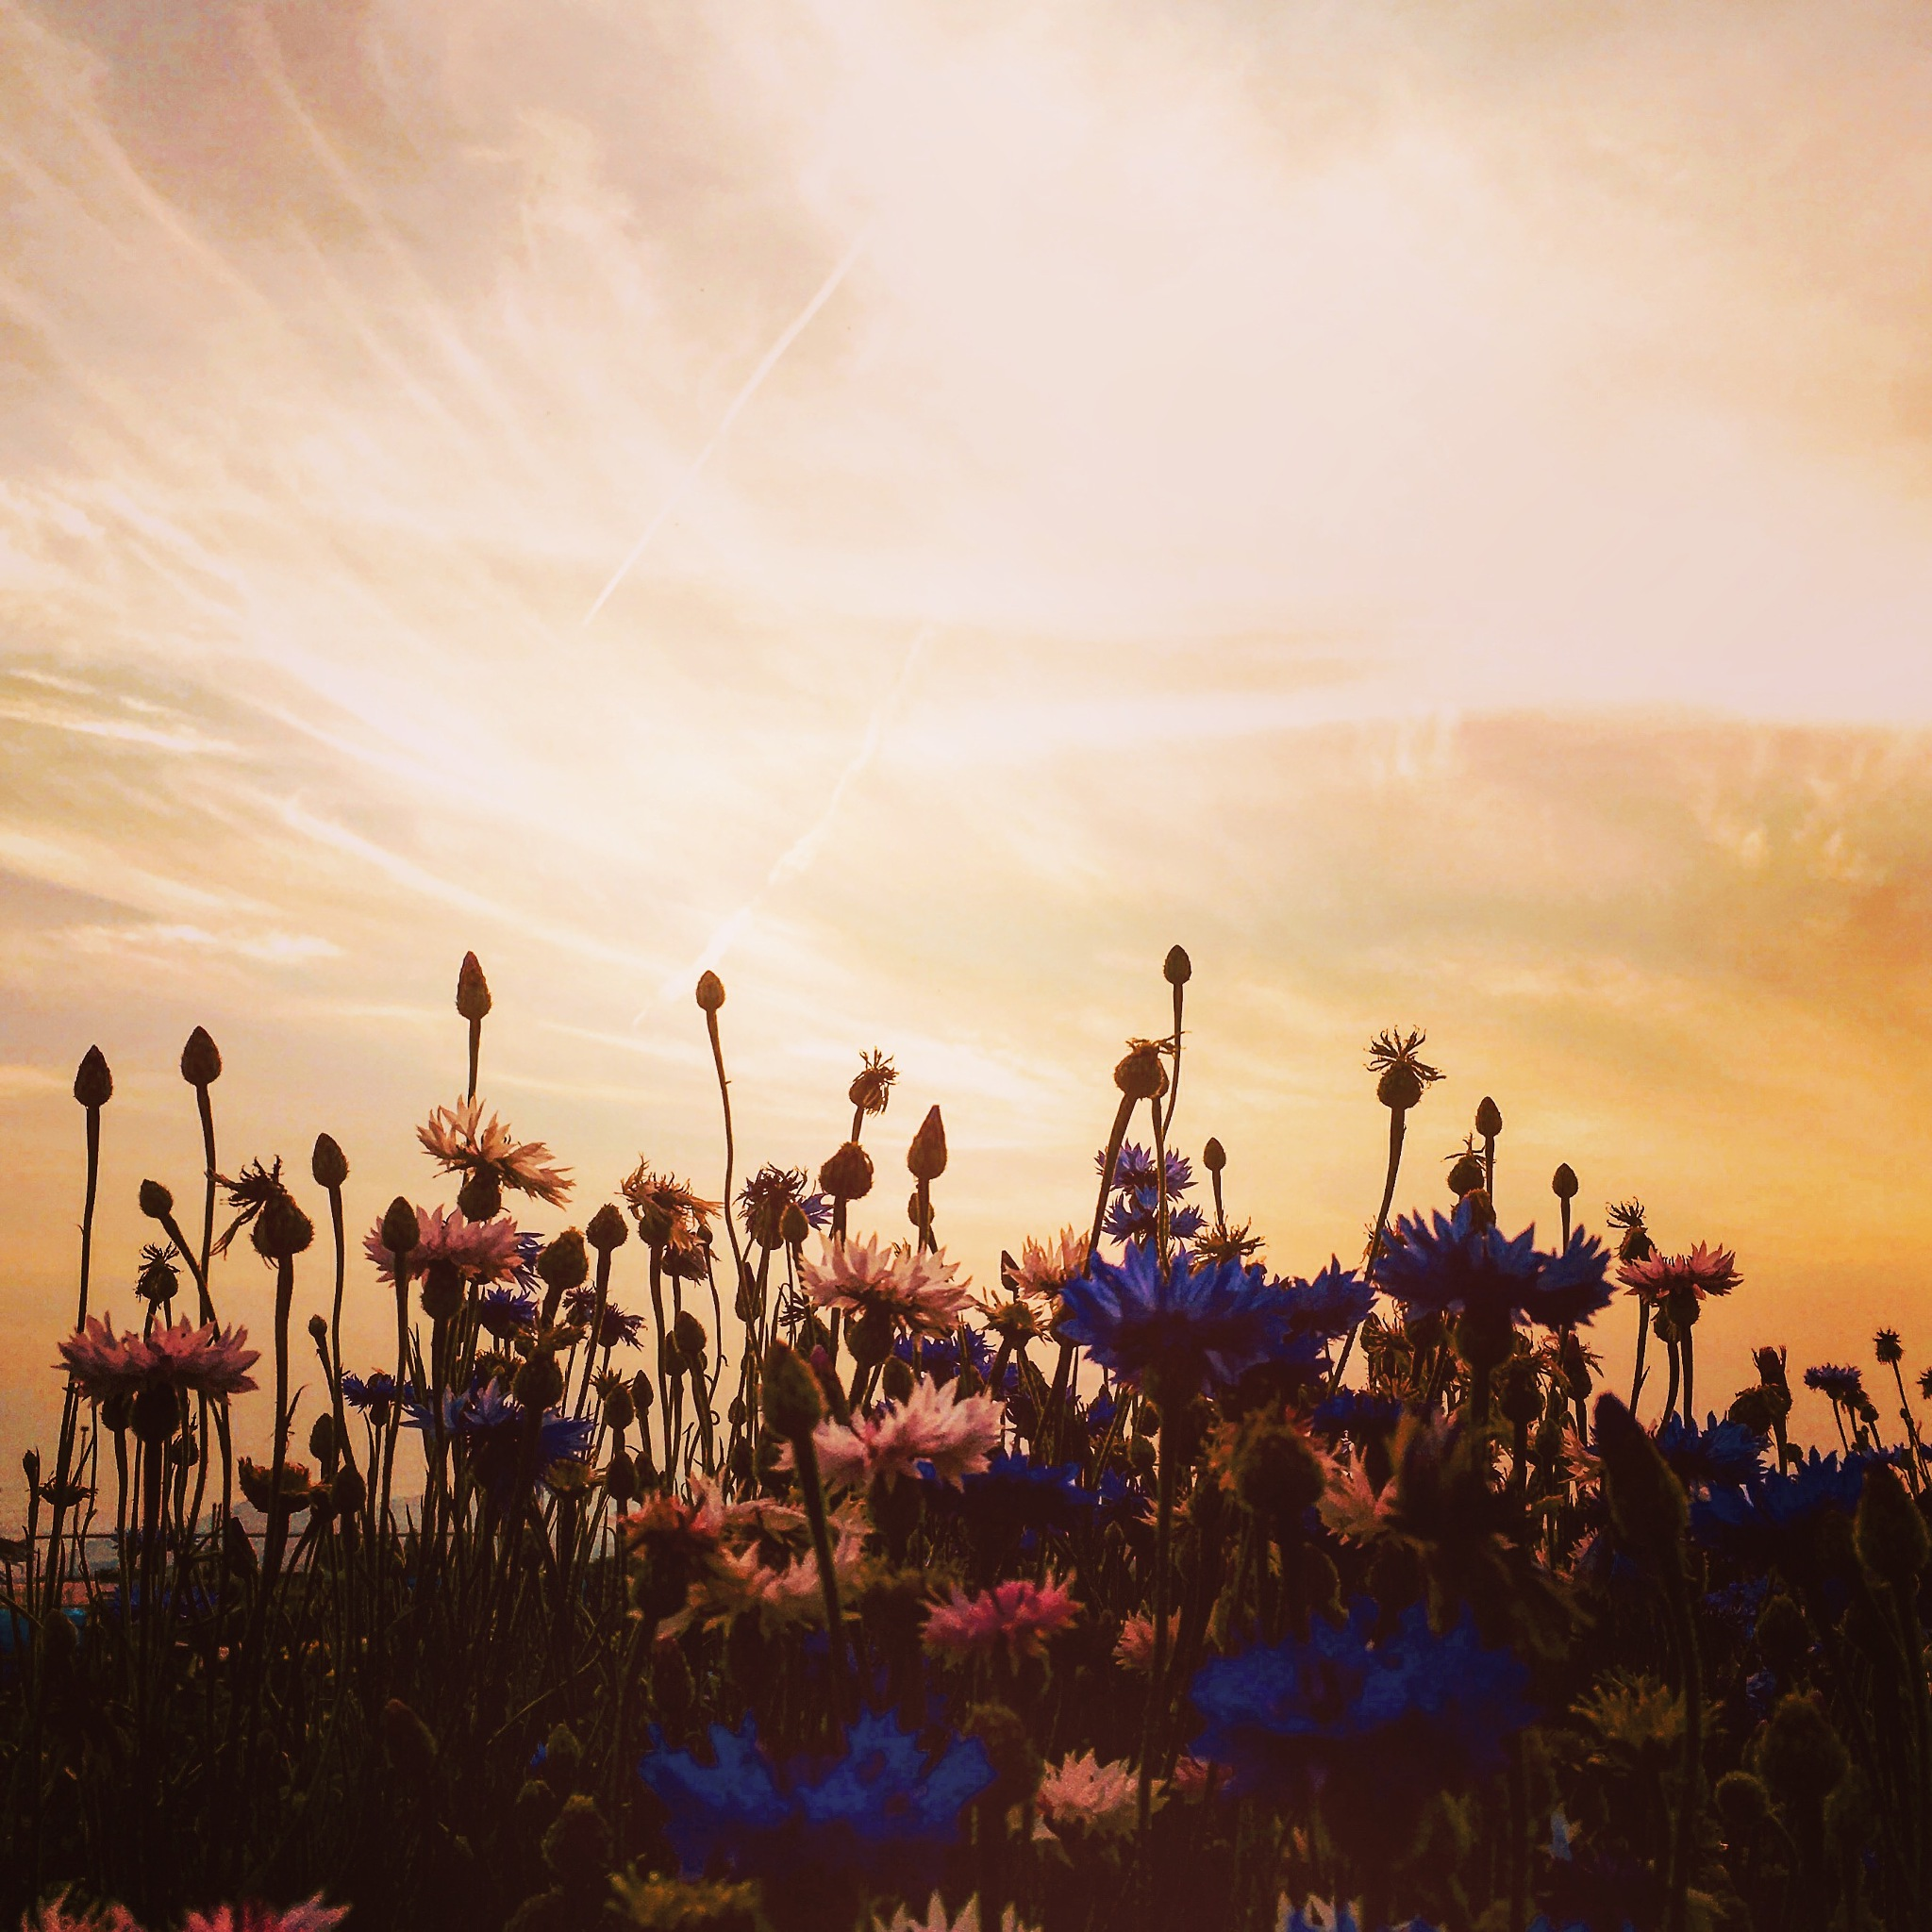 Flowers & Sunset by Lucia_skylover